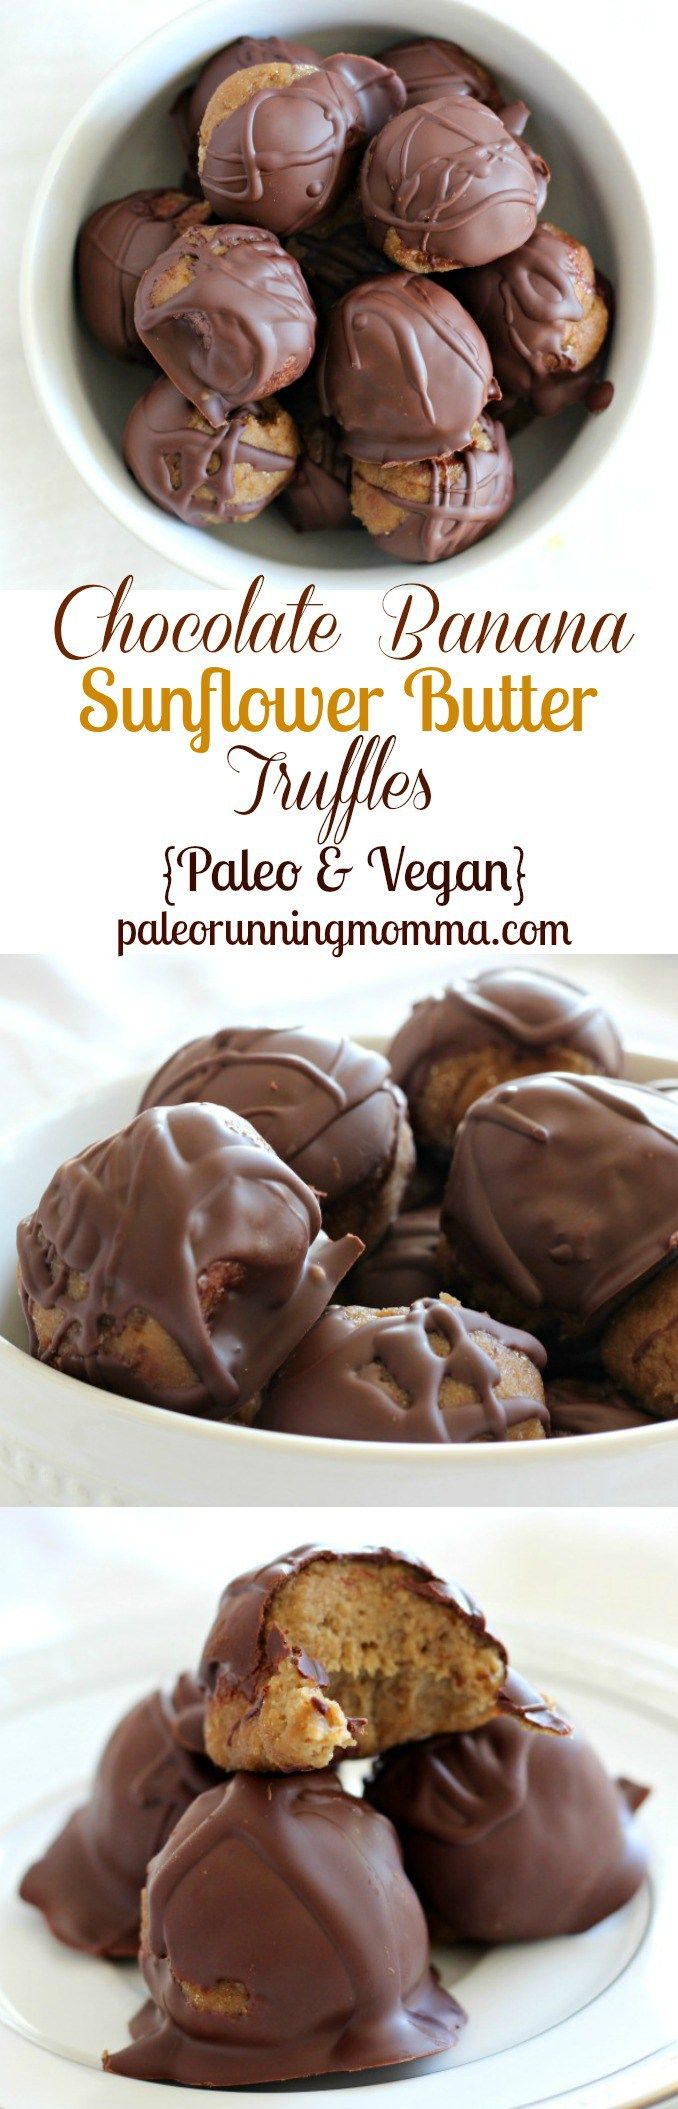 Chocolate Banana Sunflower Butter Truffles - Dark chocolate dipped. Maybe I'll substitute these for my grandma's choco pb balls some day! #chocolate #peanutbutter #goodness